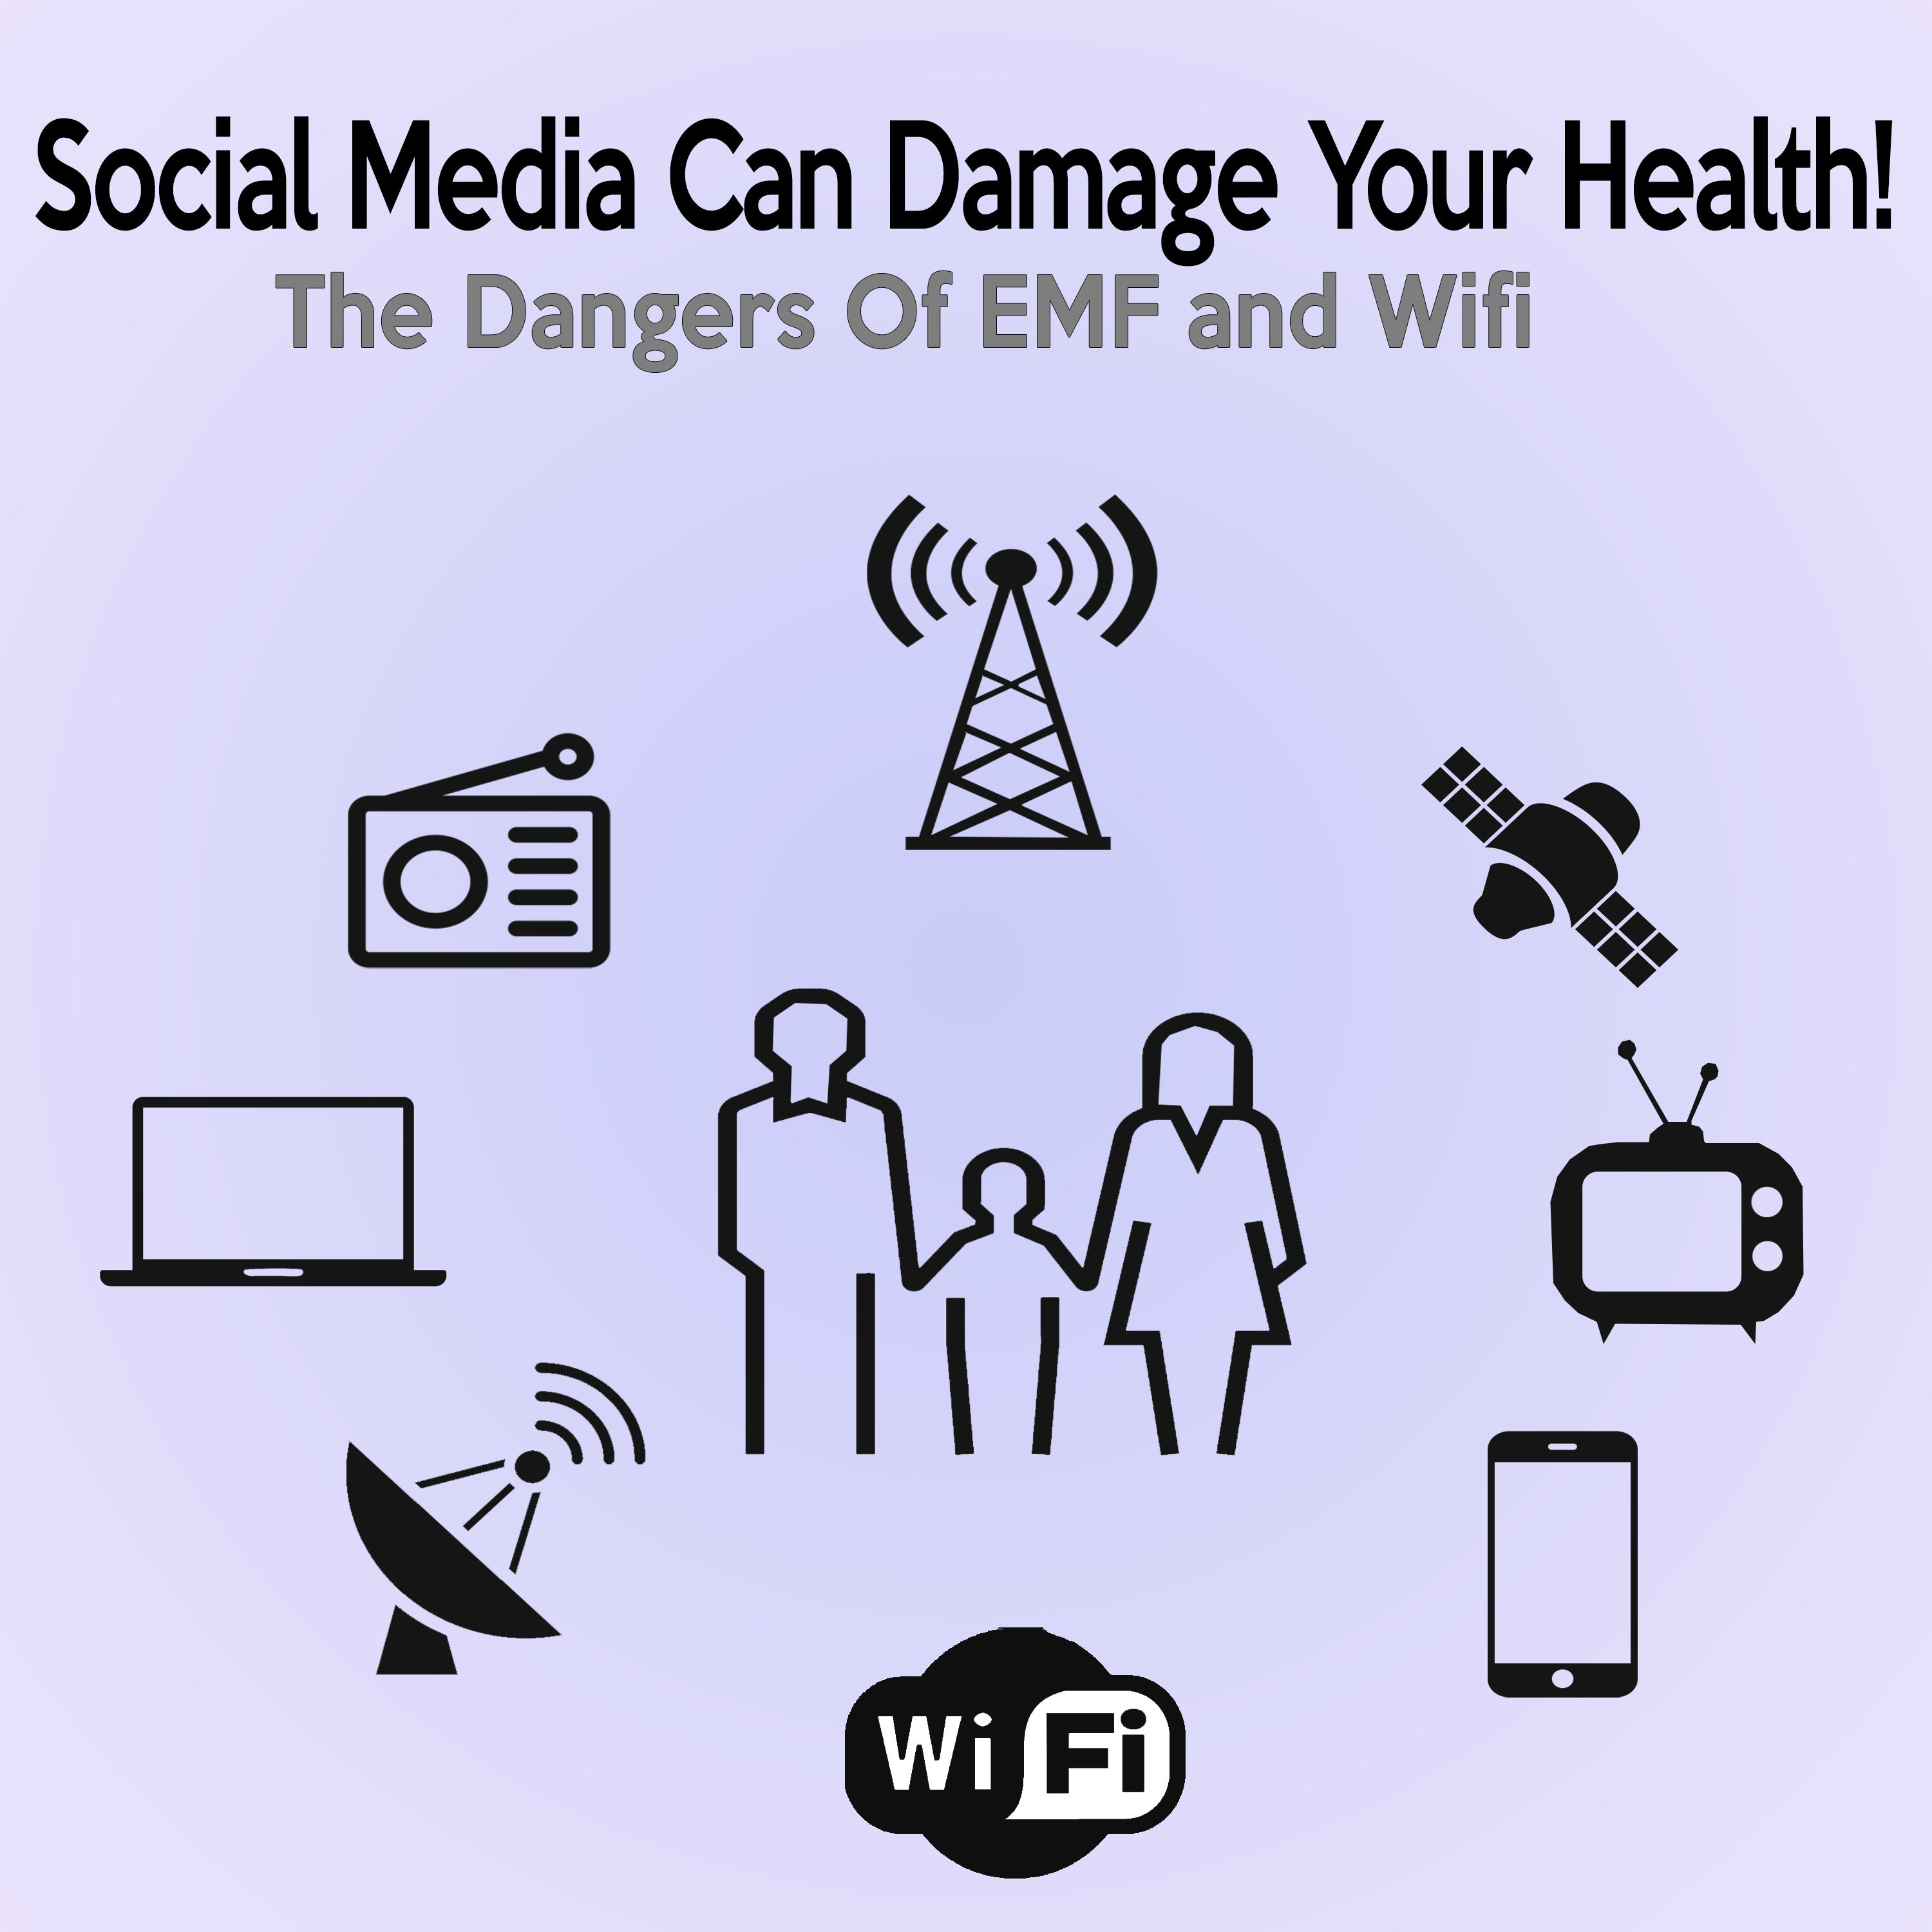 Emf Also Known As Electromagnetic Fields Are Invisible